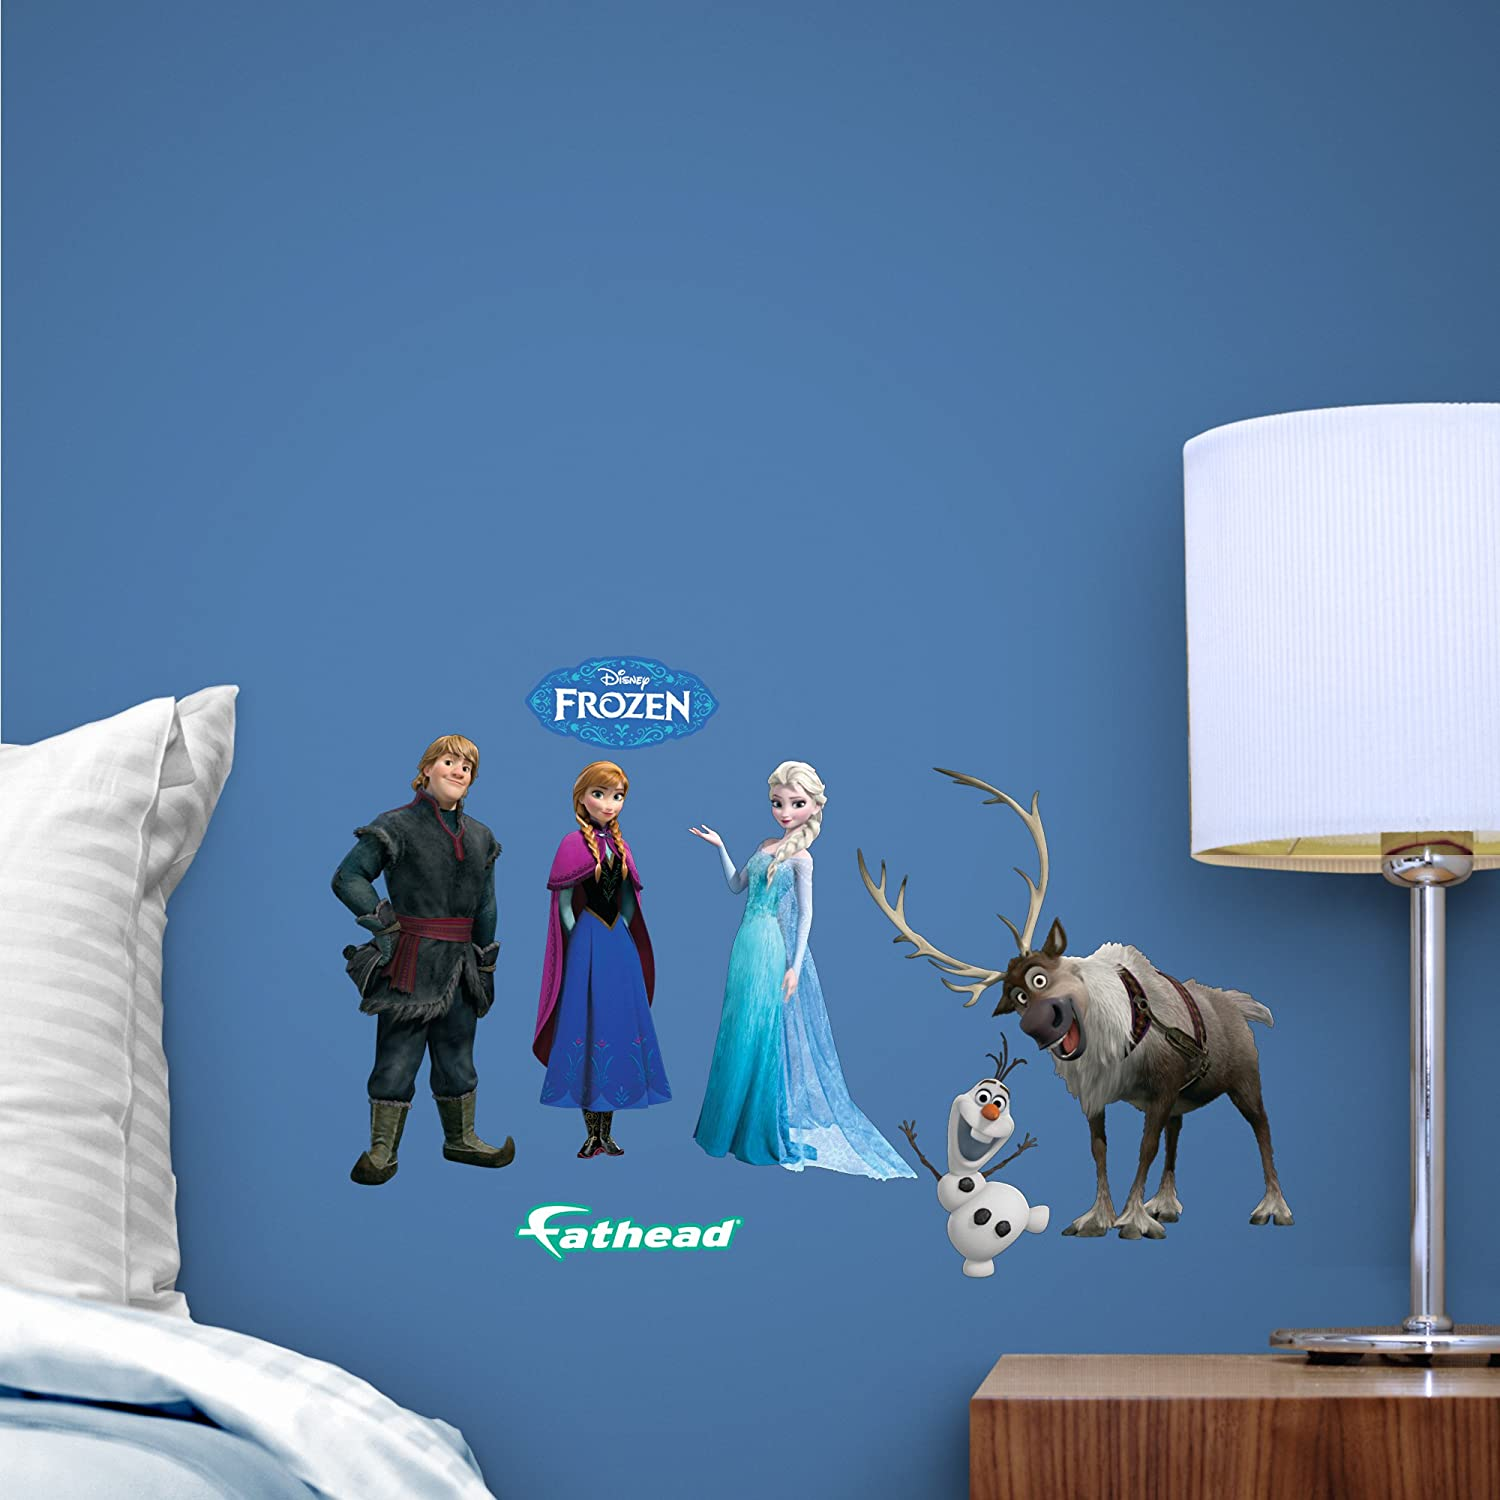 amazon com fathead disney frozen amazon com fathead disney frozen